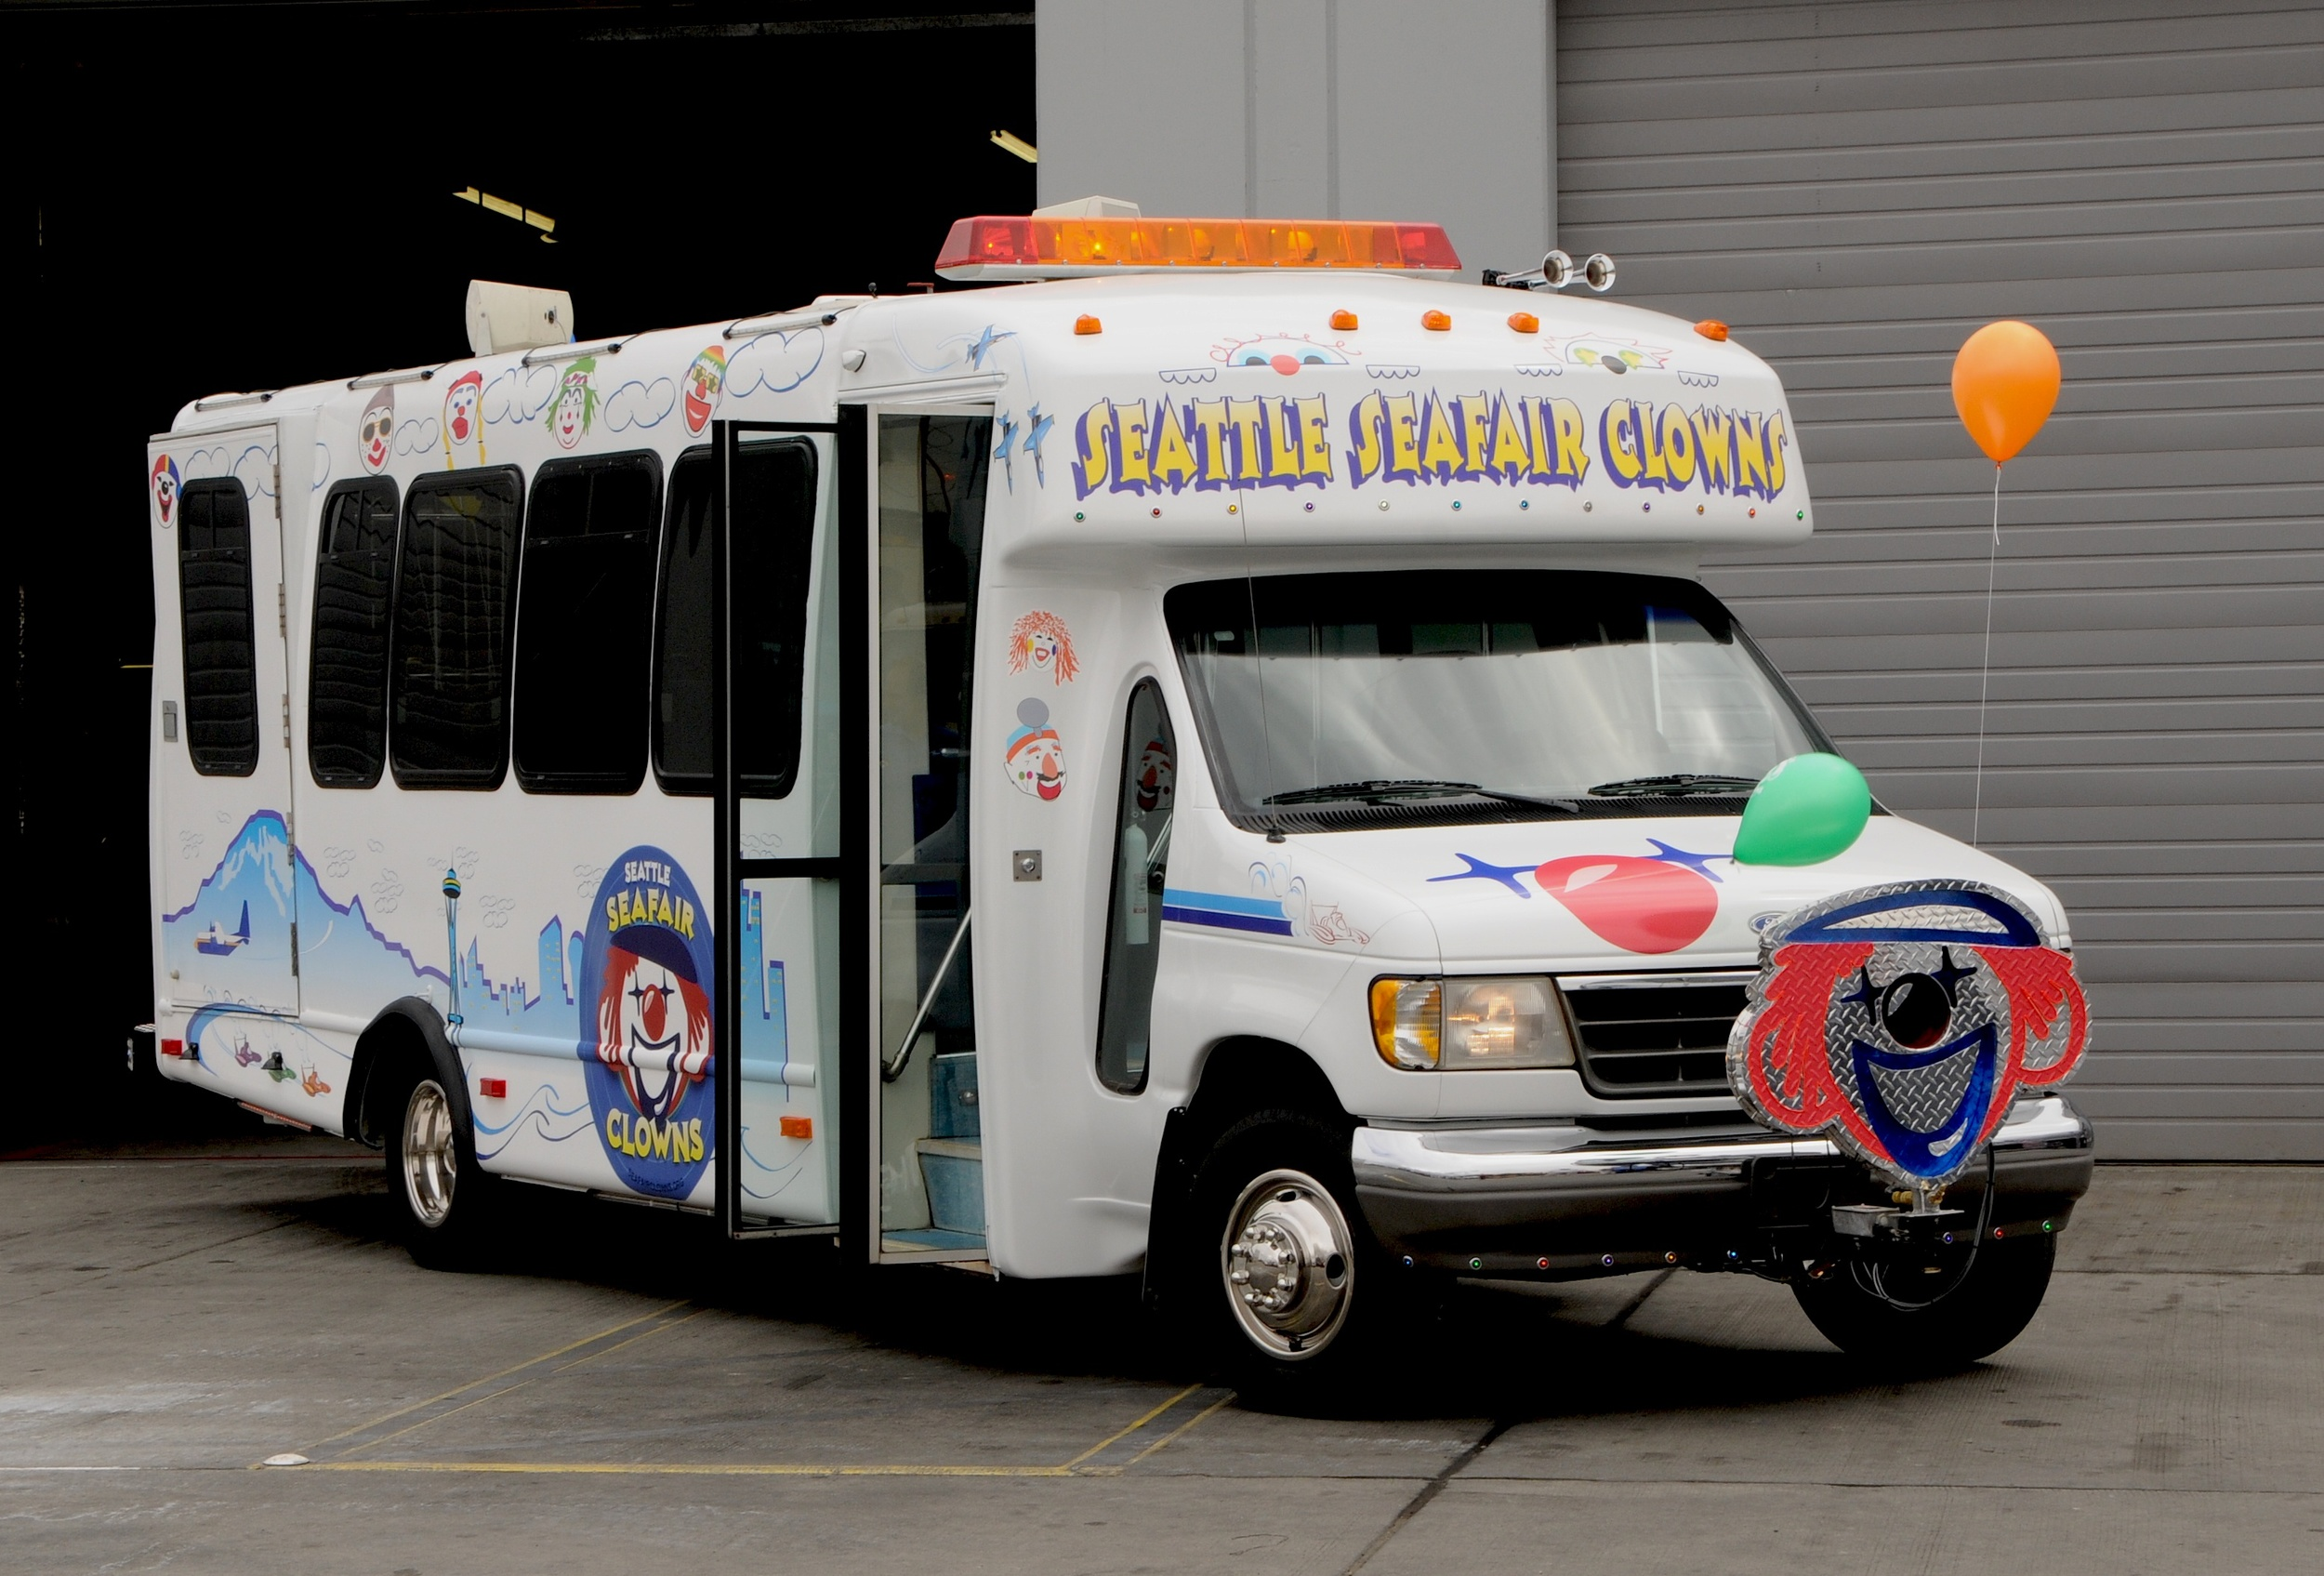 2009 Seafair Clown Vehicle.jpg